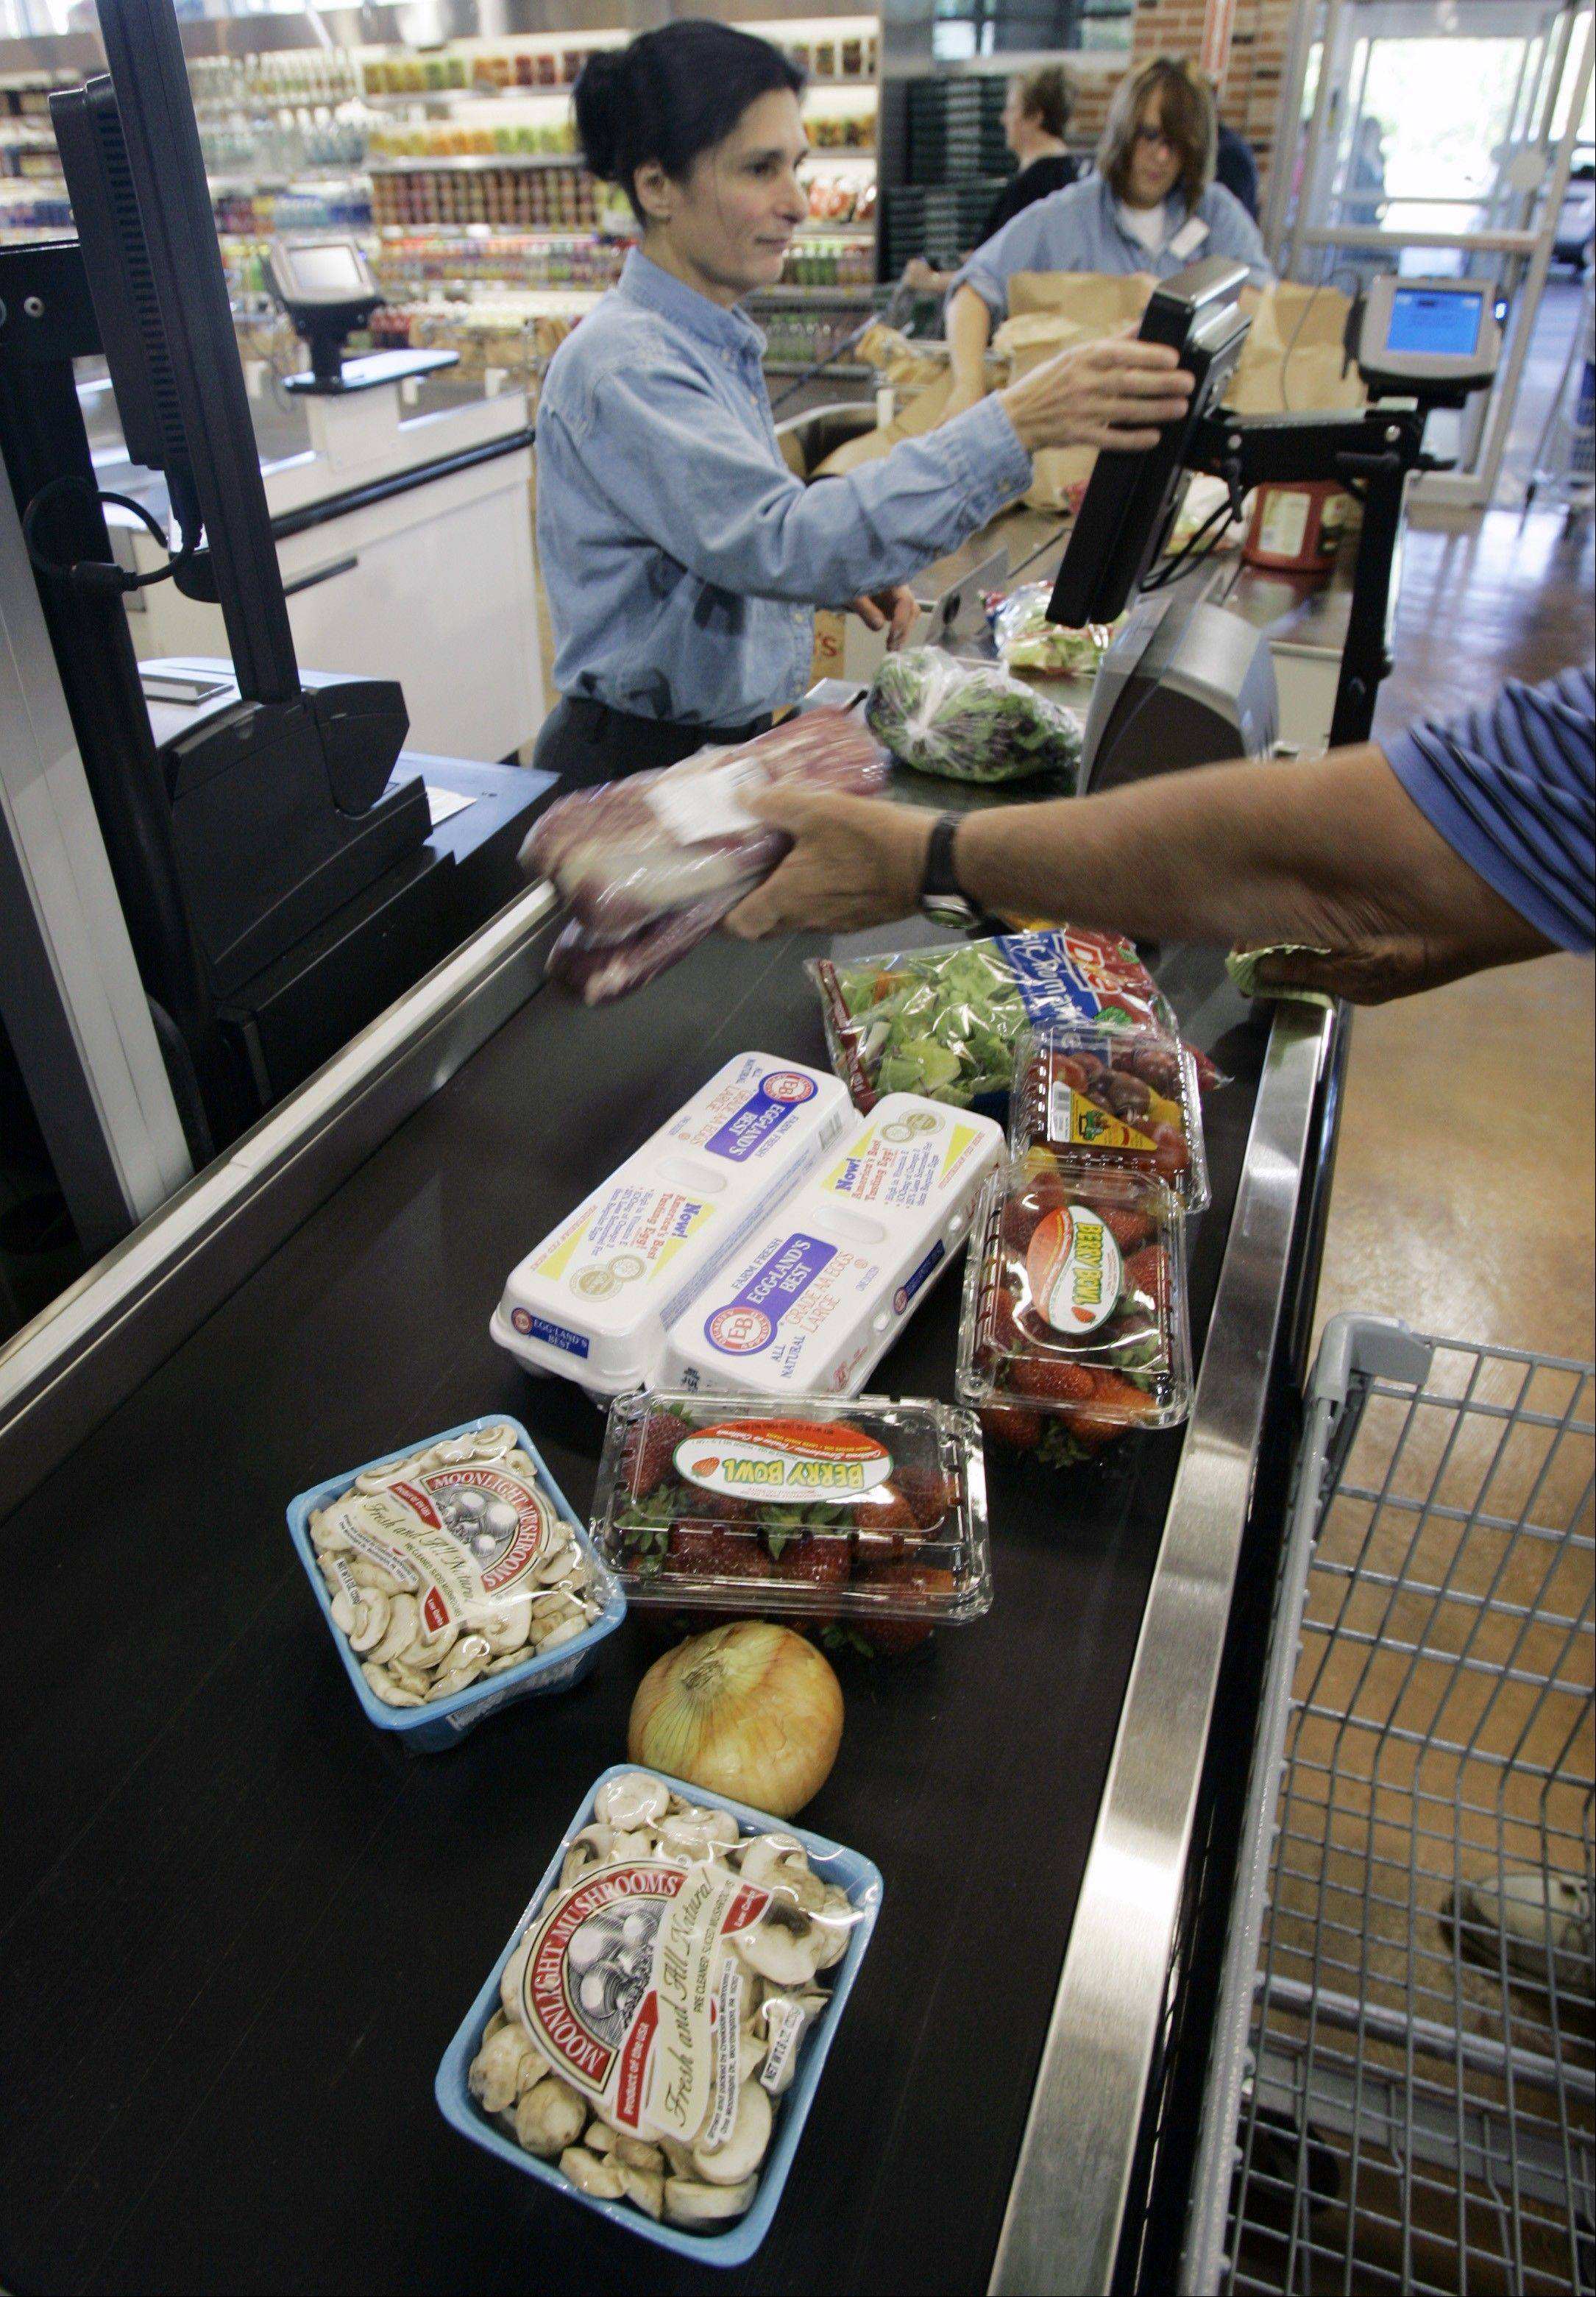 As food prices continue to rise in 2012, shoppers will use more coupons and rely on social media and mobile applications to find low prices.